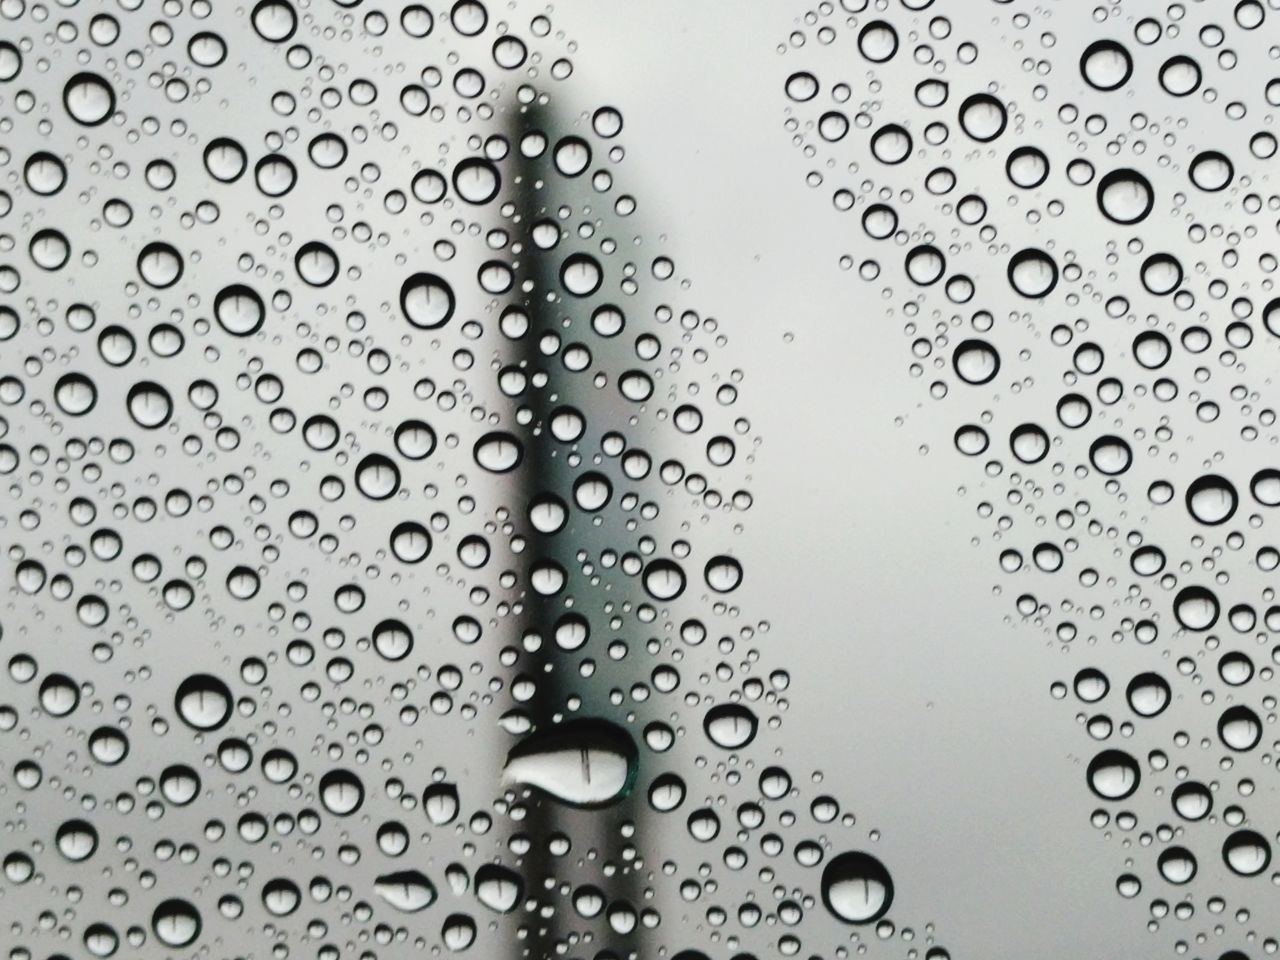 a break in the rain (happy new year to friends near and far!) 🎉🍾🥂🎆 Abstract Rain Drops Rain Drops On The Window On The Road Droplets Of Water Pattern No People In A Car What I See Gray Sky Dreary Weather  Let's Do It Chic! Different Yet The Same Focus On Details Eyem Gallery Nature